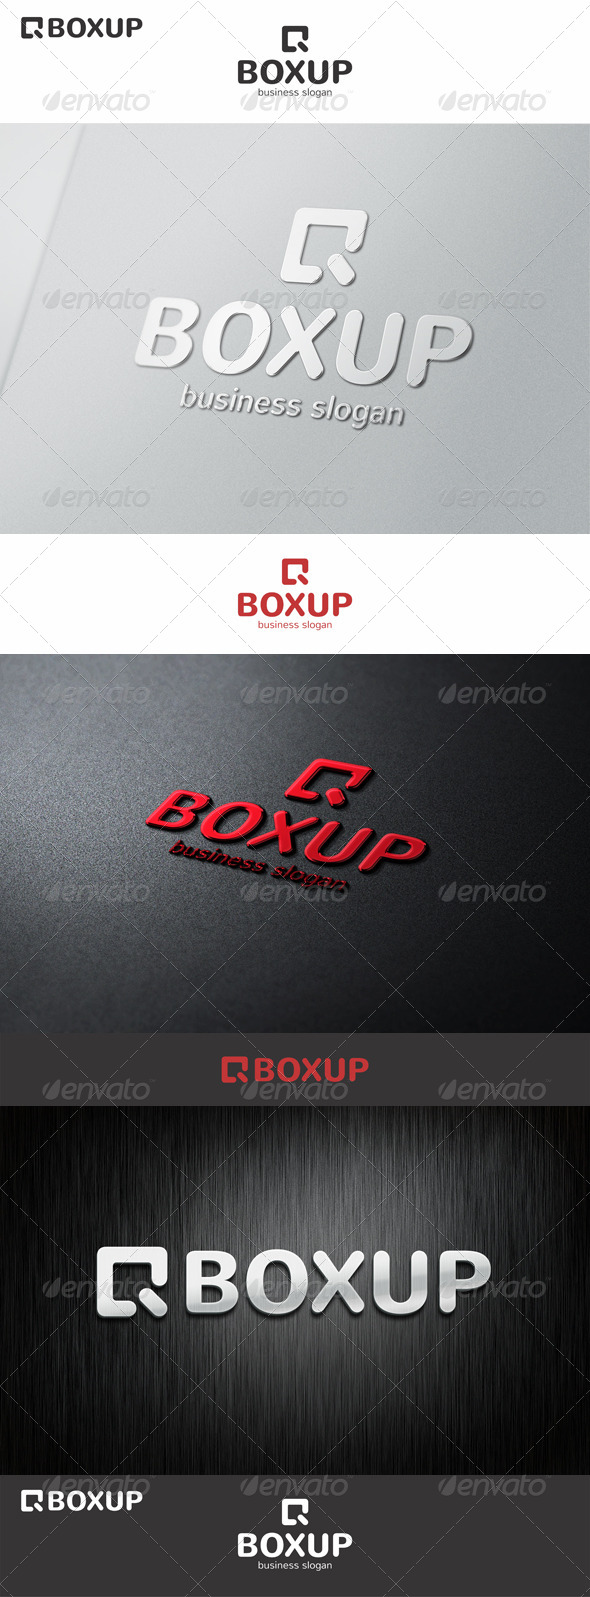 Box Up Logo Arrow - Symbols Logo Templates